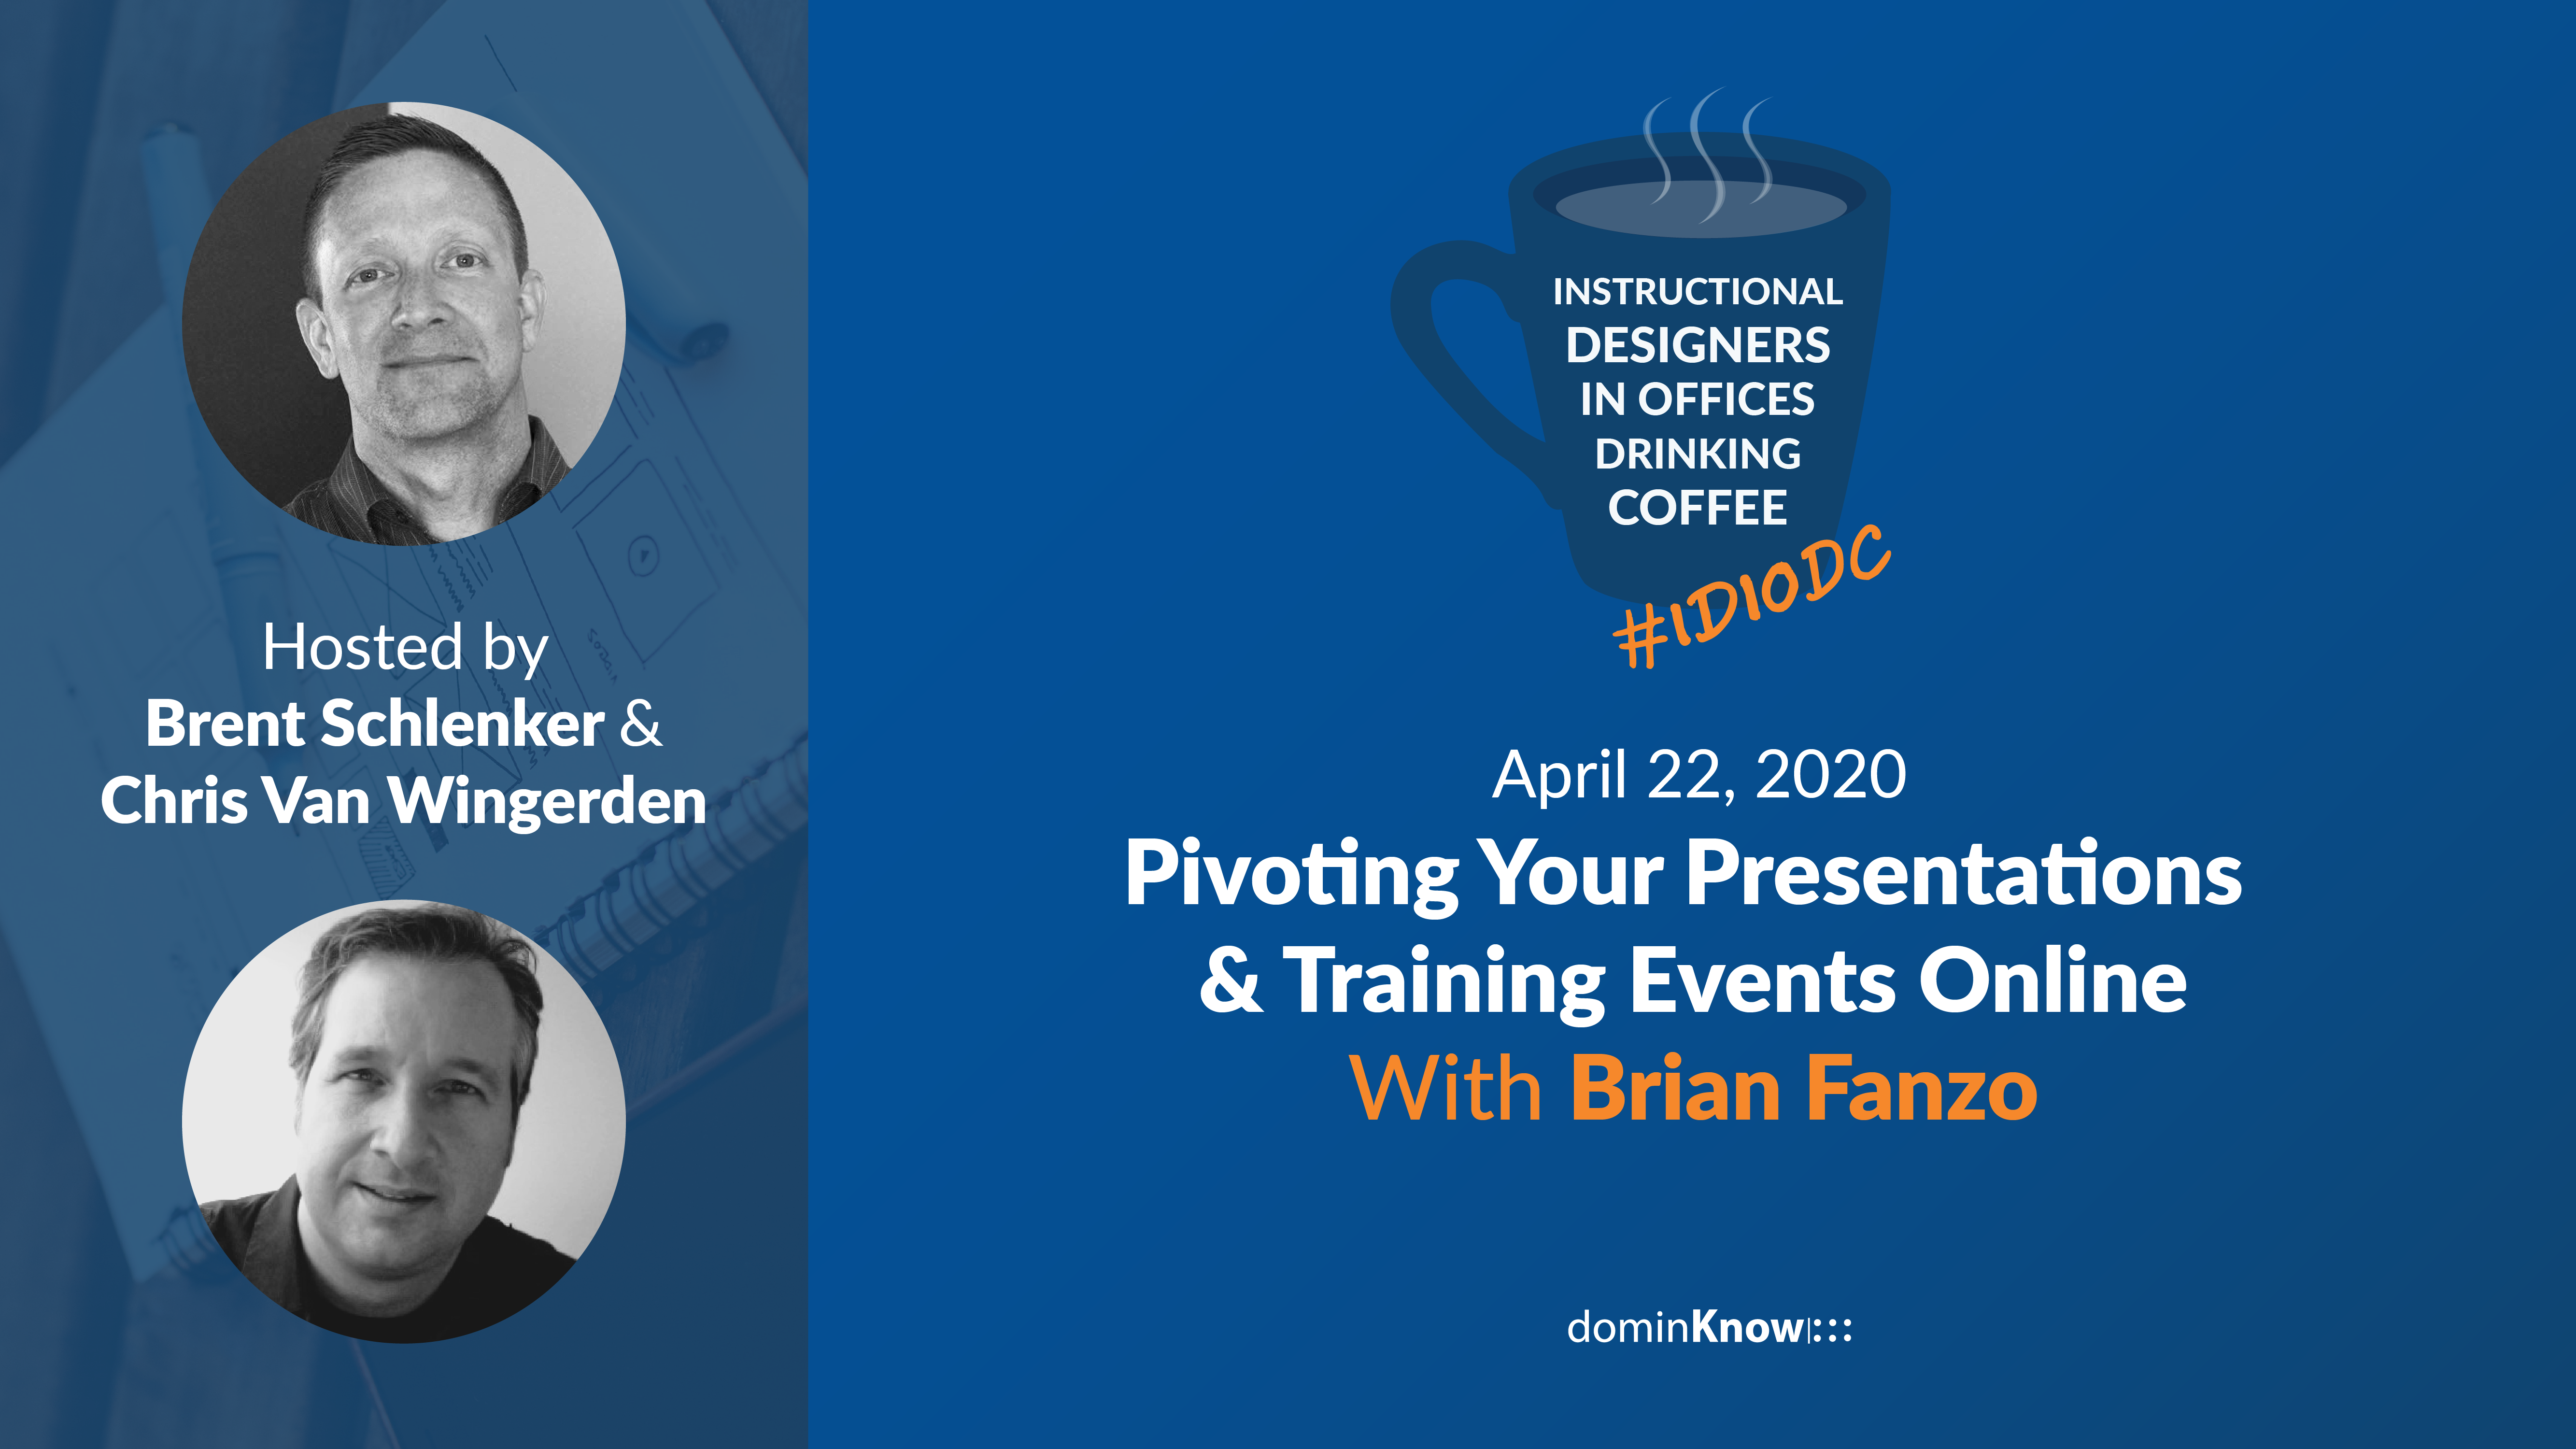 Brian Fanzo joins us for an informative session about making the switch to online trianing